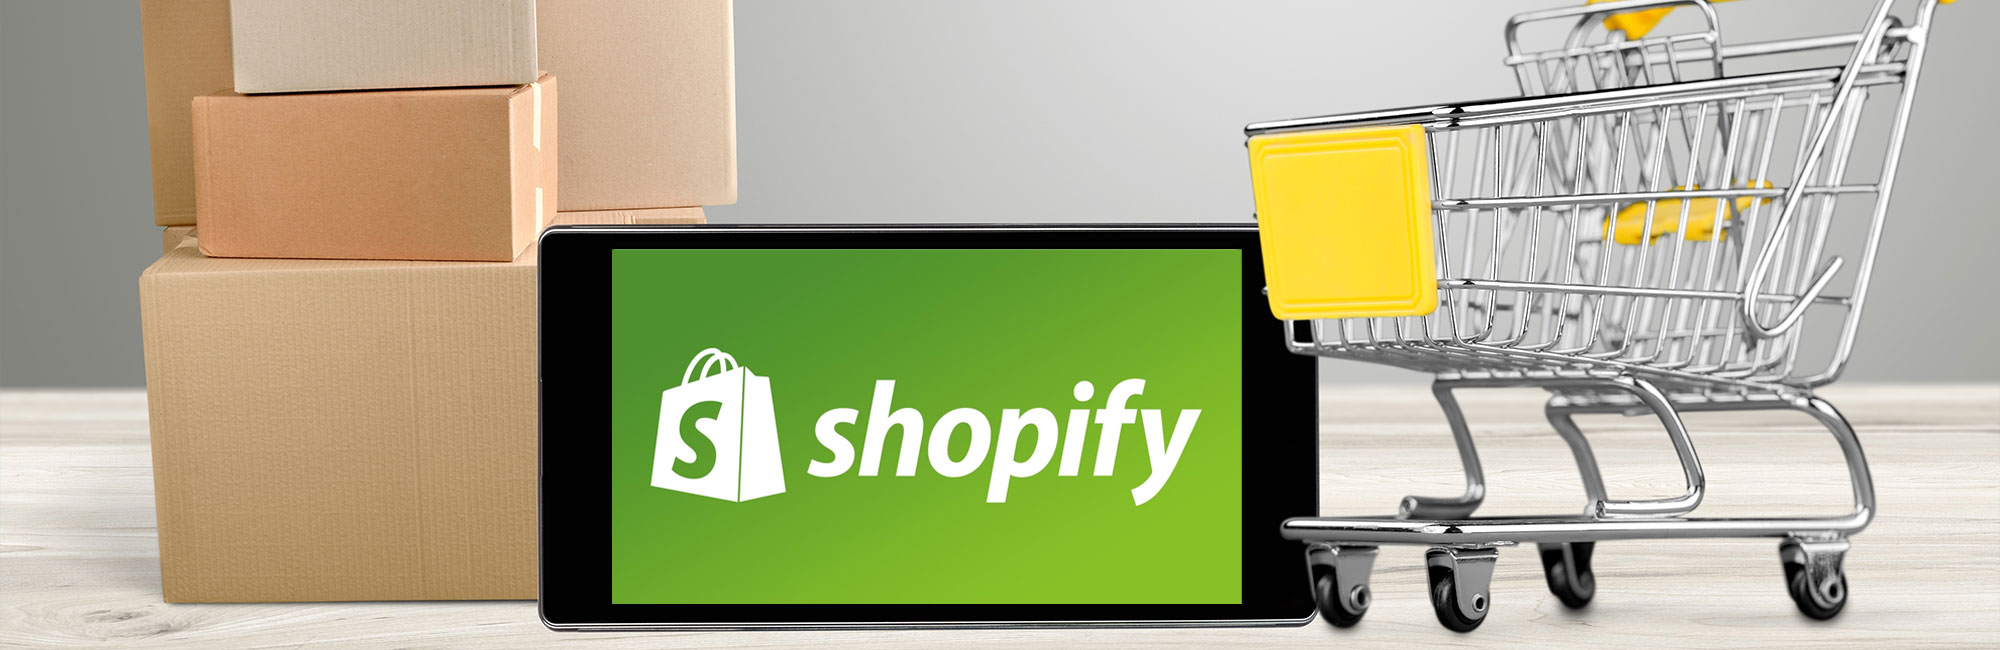 Why Shopify is great for making e-commerce websites?